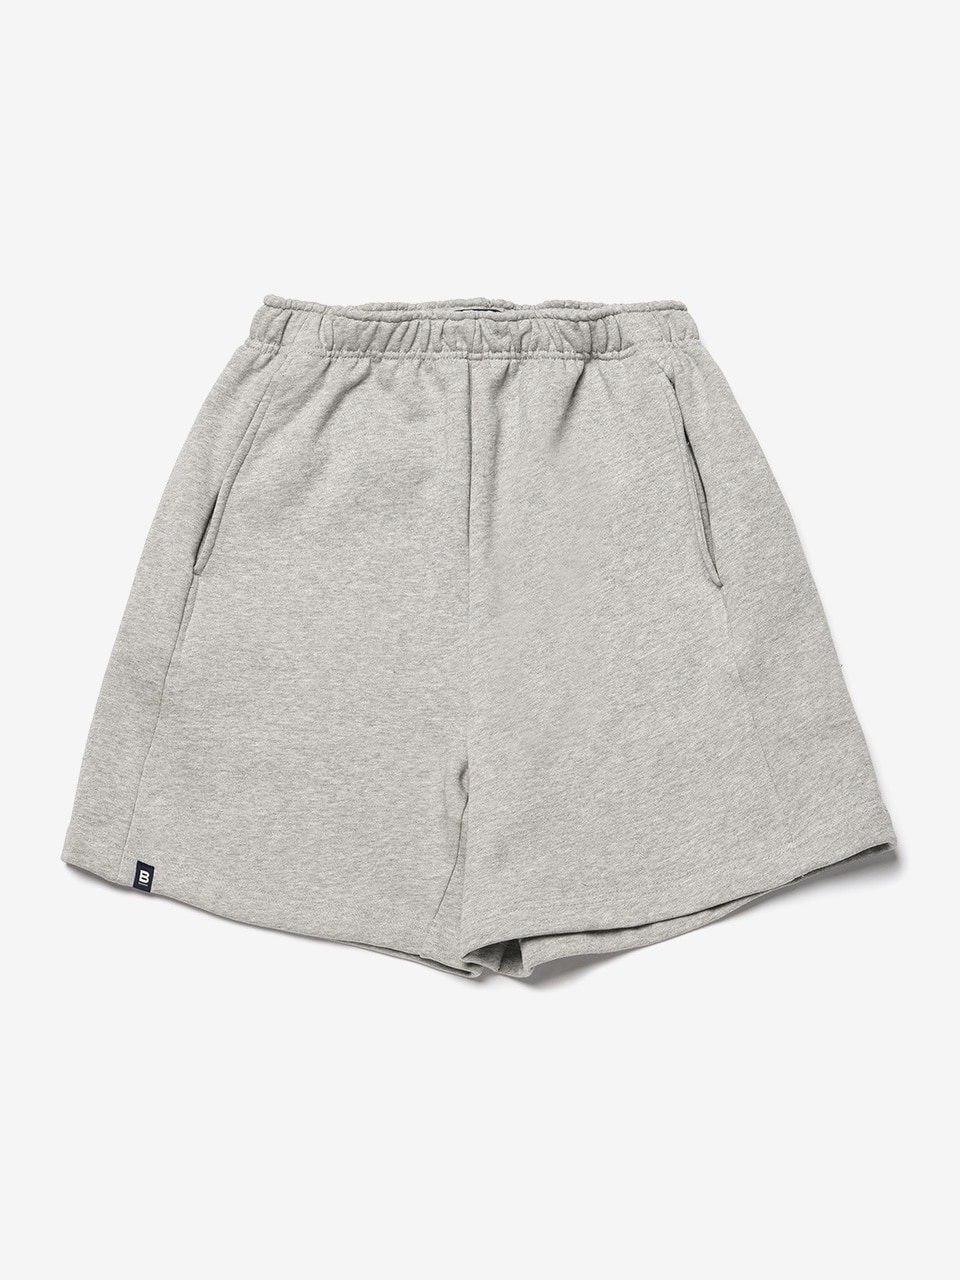 BENSIMON SWEAT SHORTS - GREY